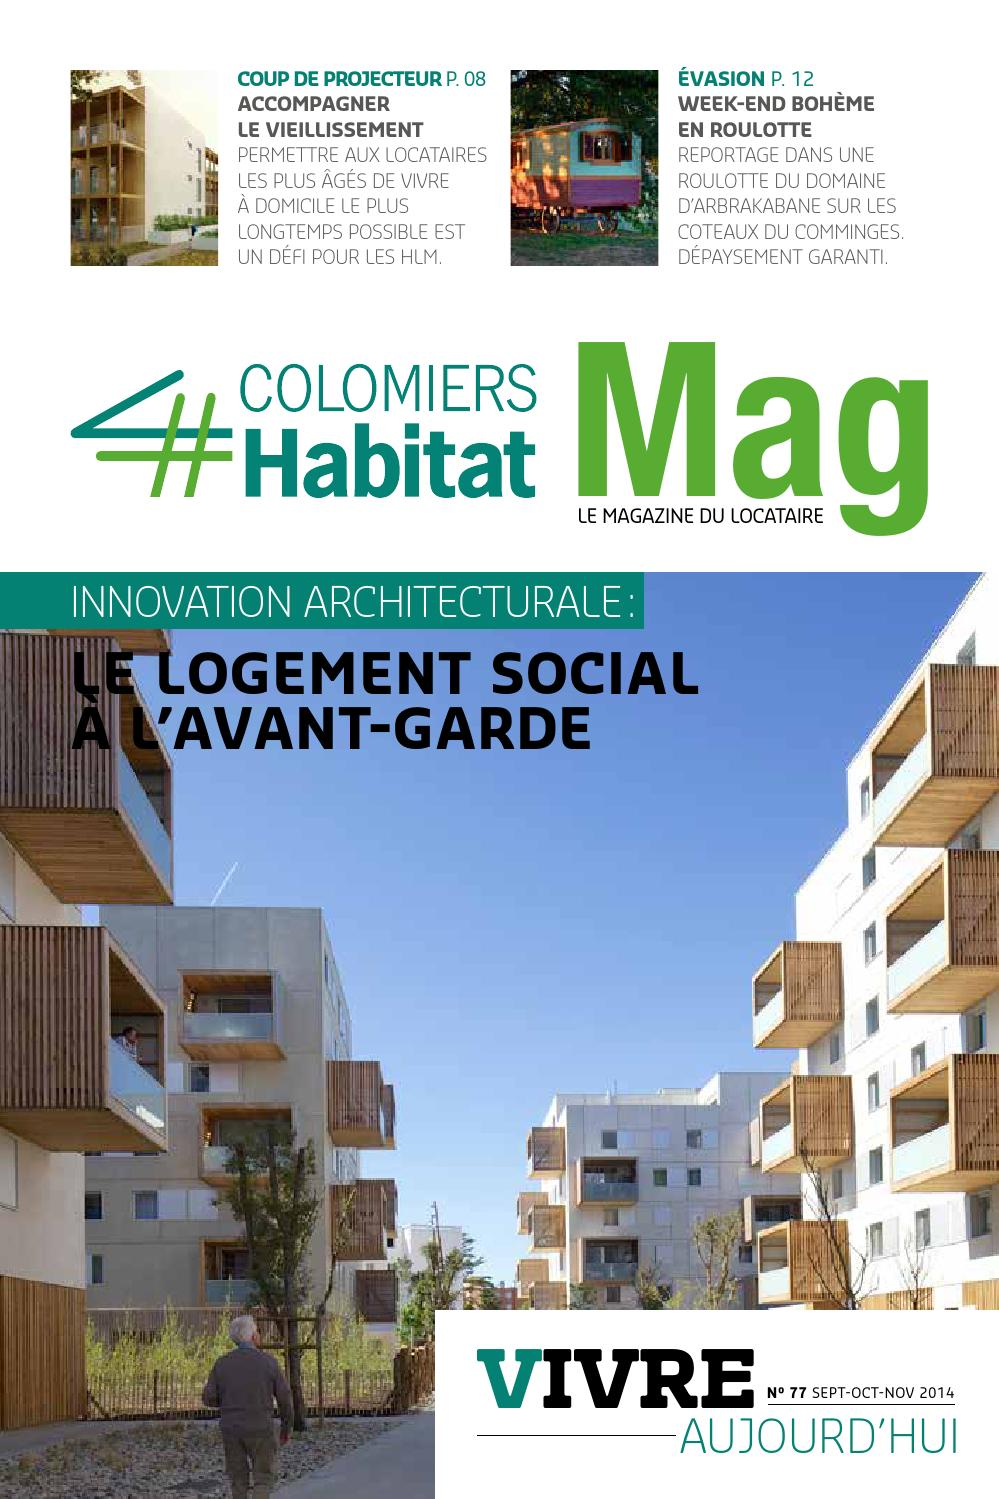 colomiers habitat magazine vivre aujourd 39 hui n 77 by agenceicom issuu. Black Bedroom Furniture Sets. Home Design Ideas